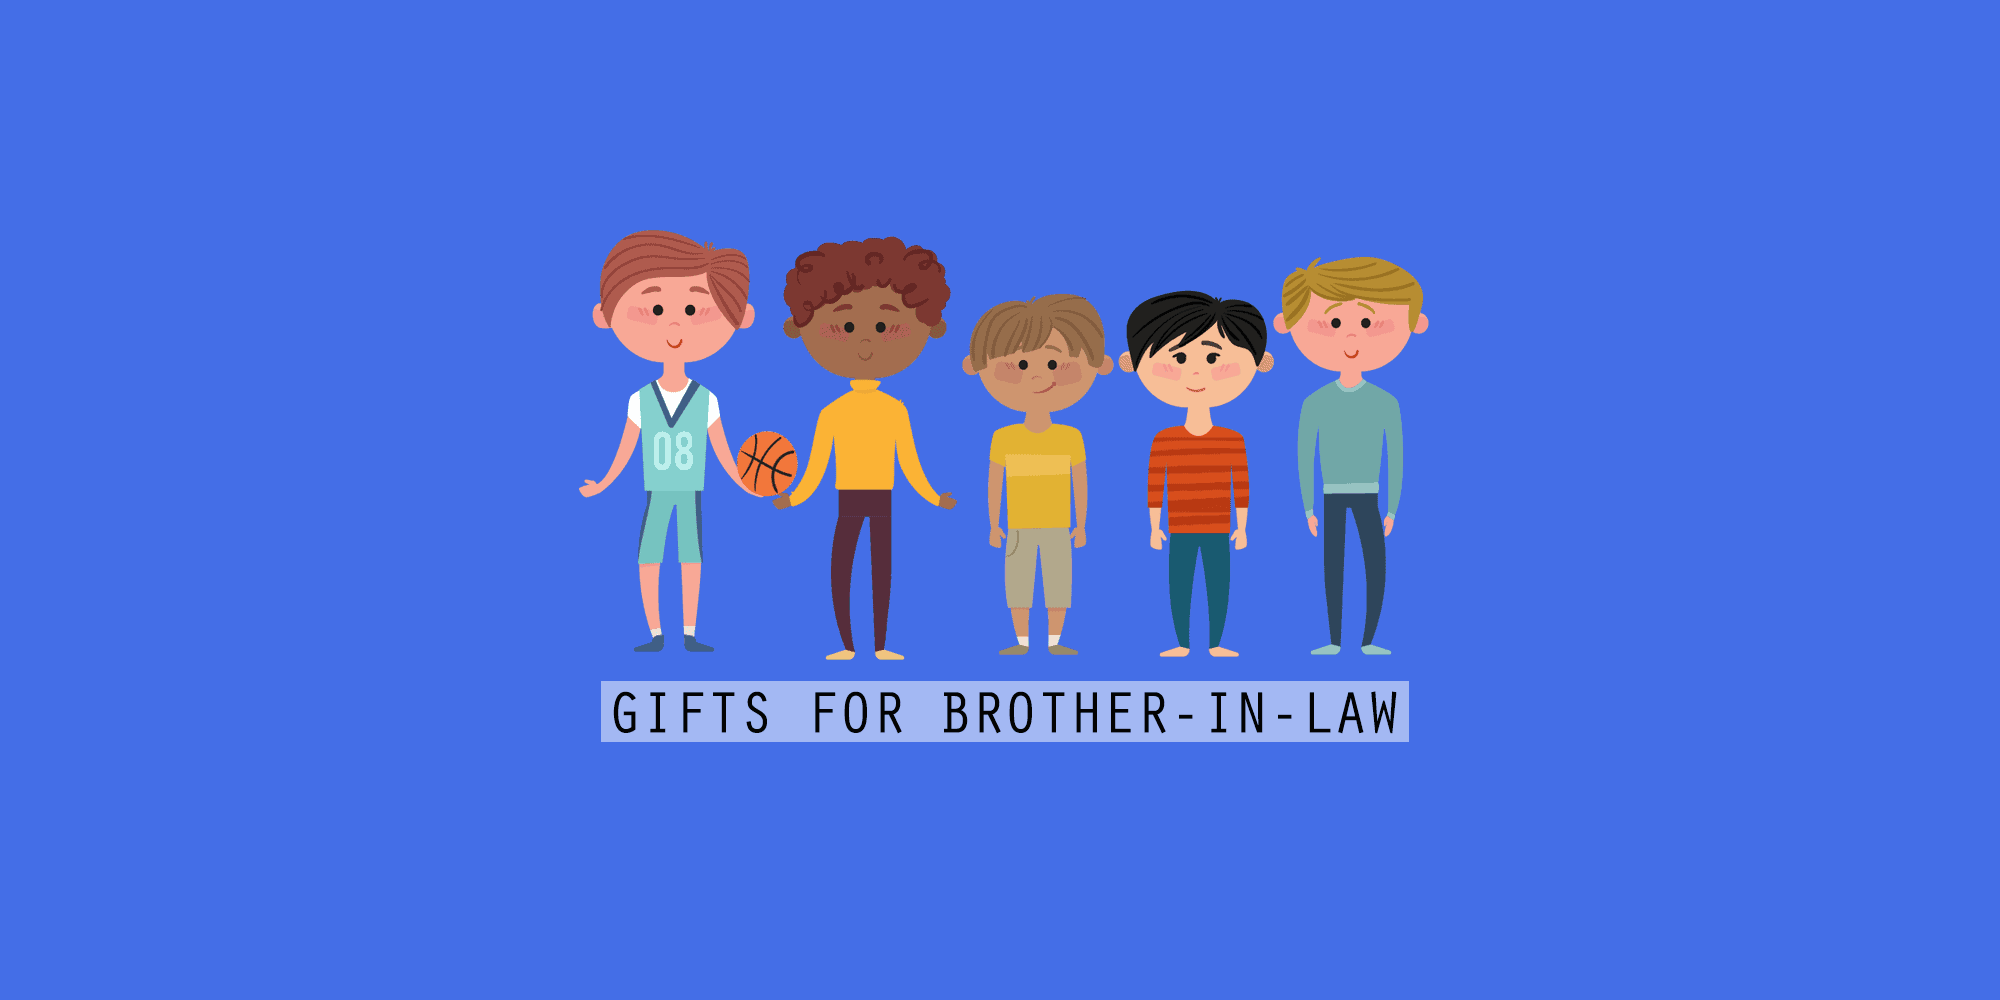 Best Gifts for Brother-in-Law: 35+ Coolest Ideas (2021)